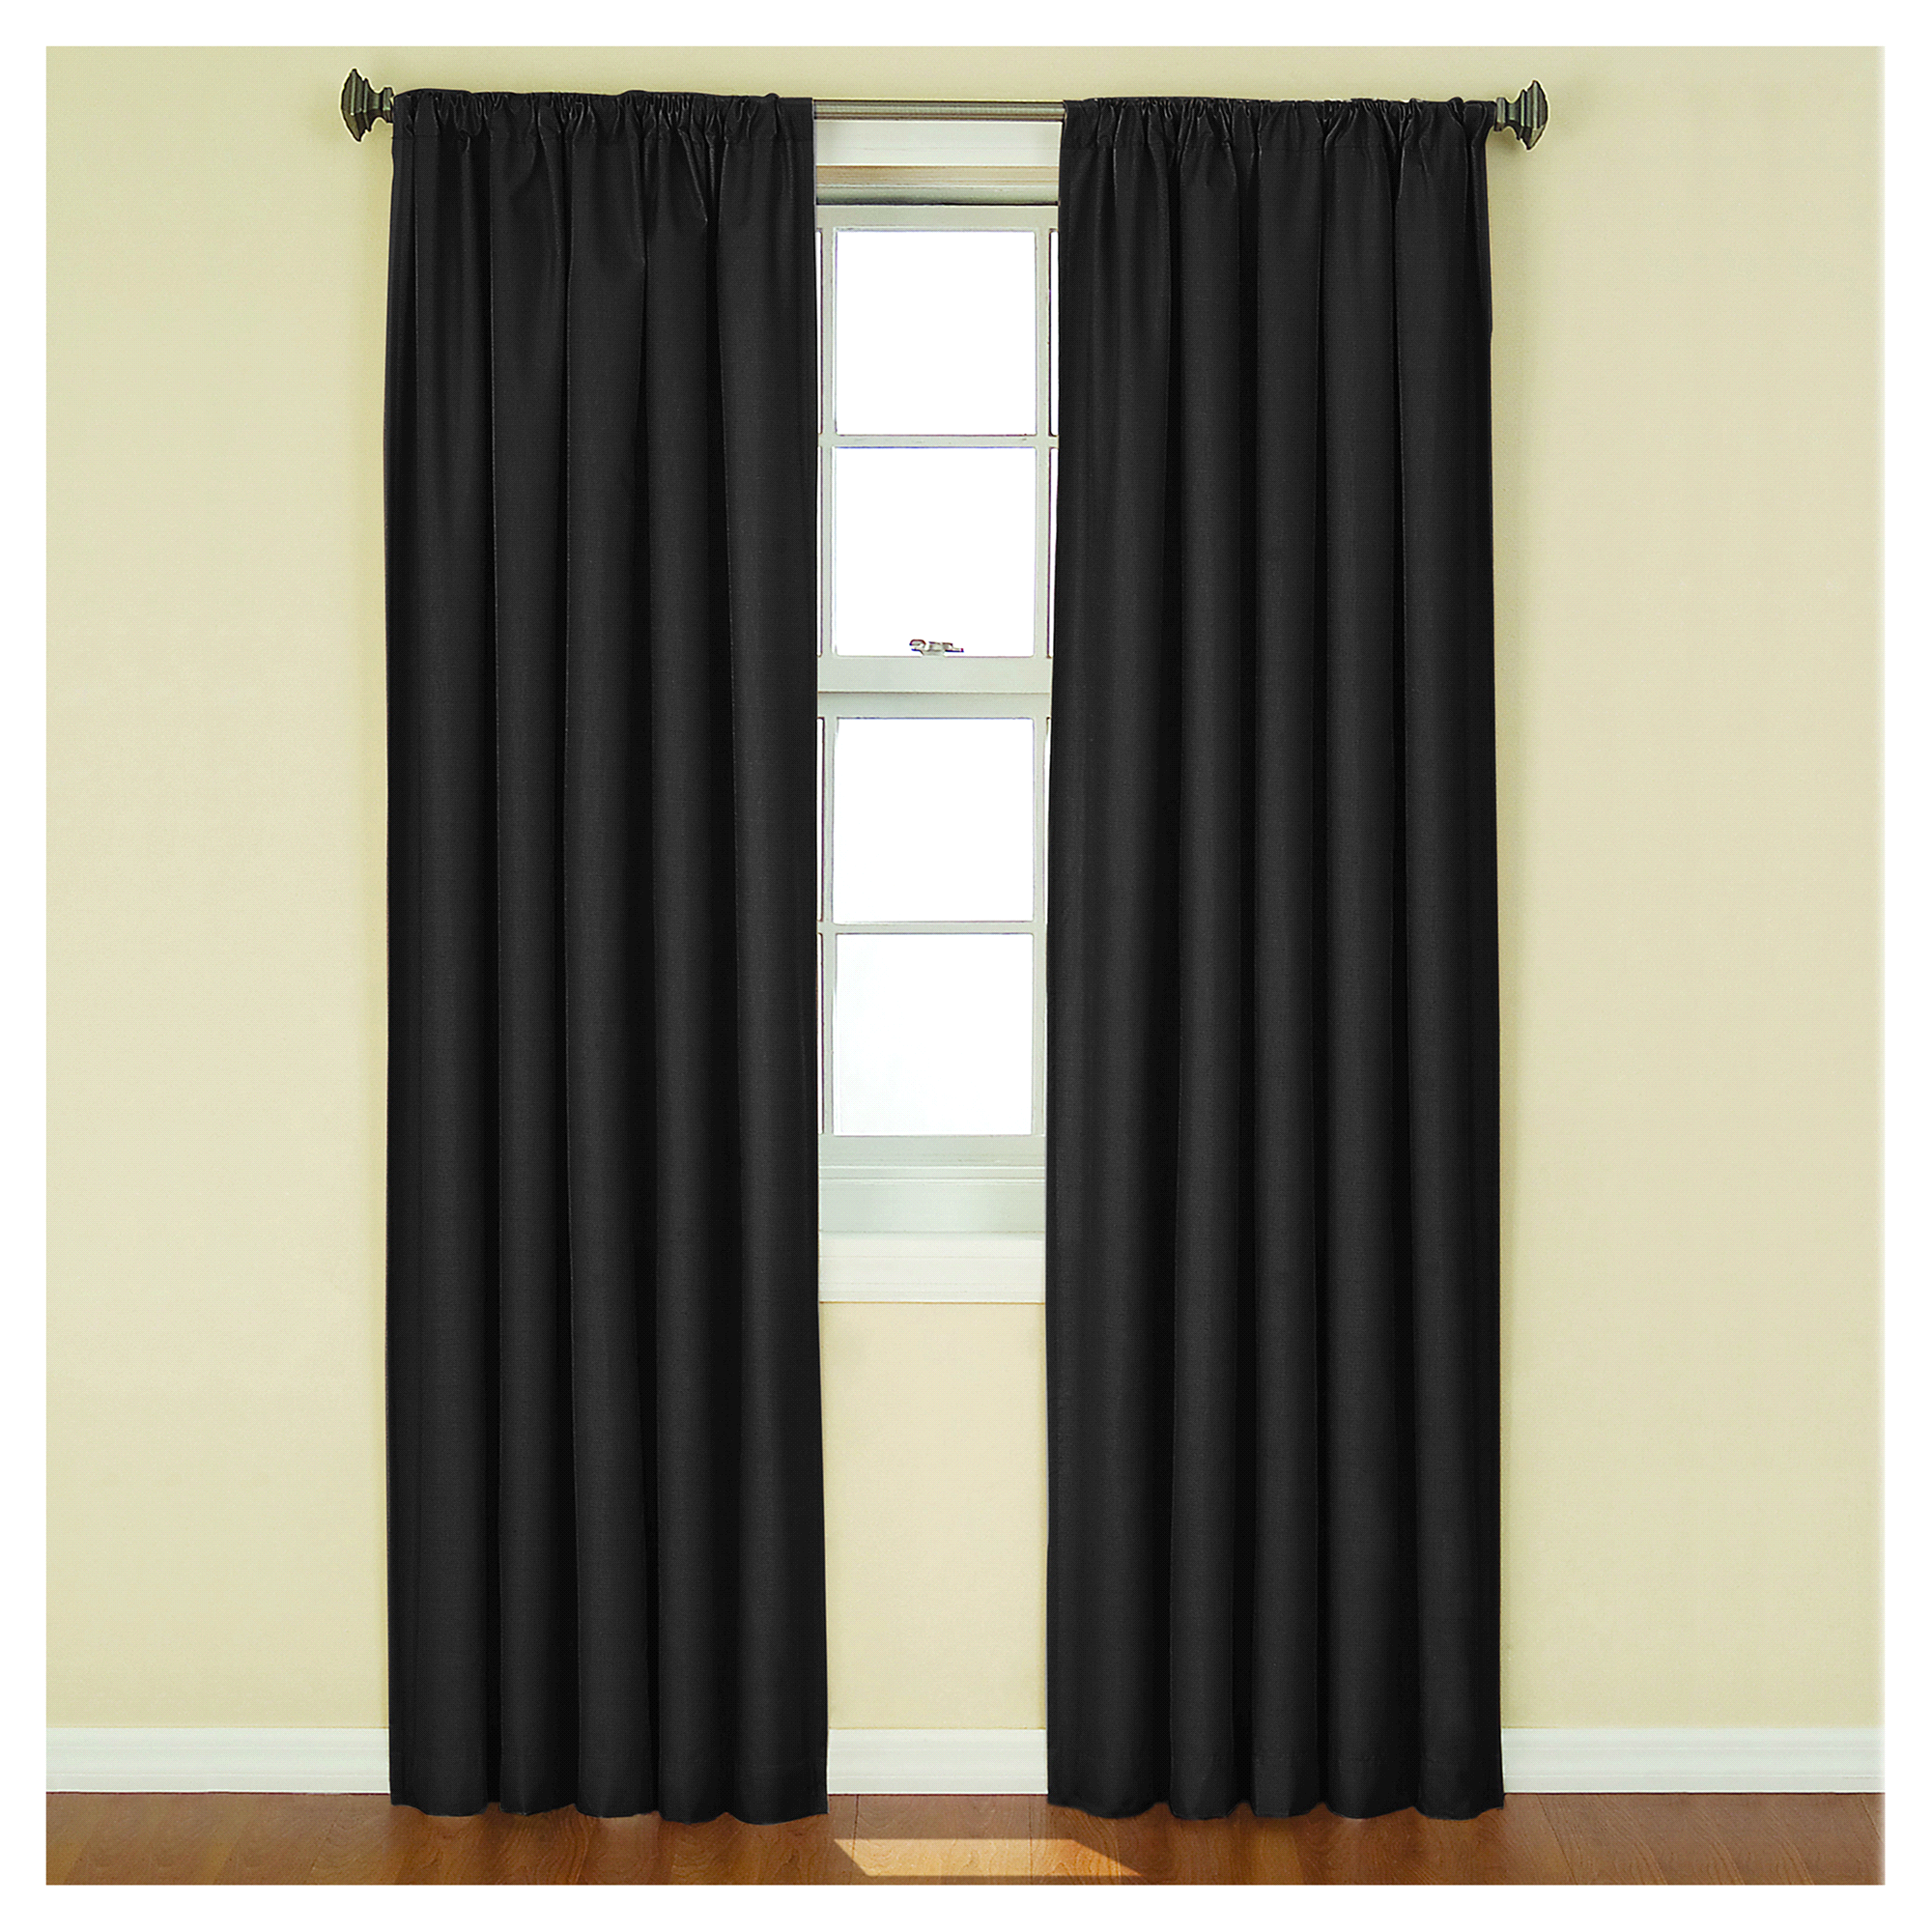 home curtain the deltaangelgroup furniture ideas curtains heat honoroak resistant blocking